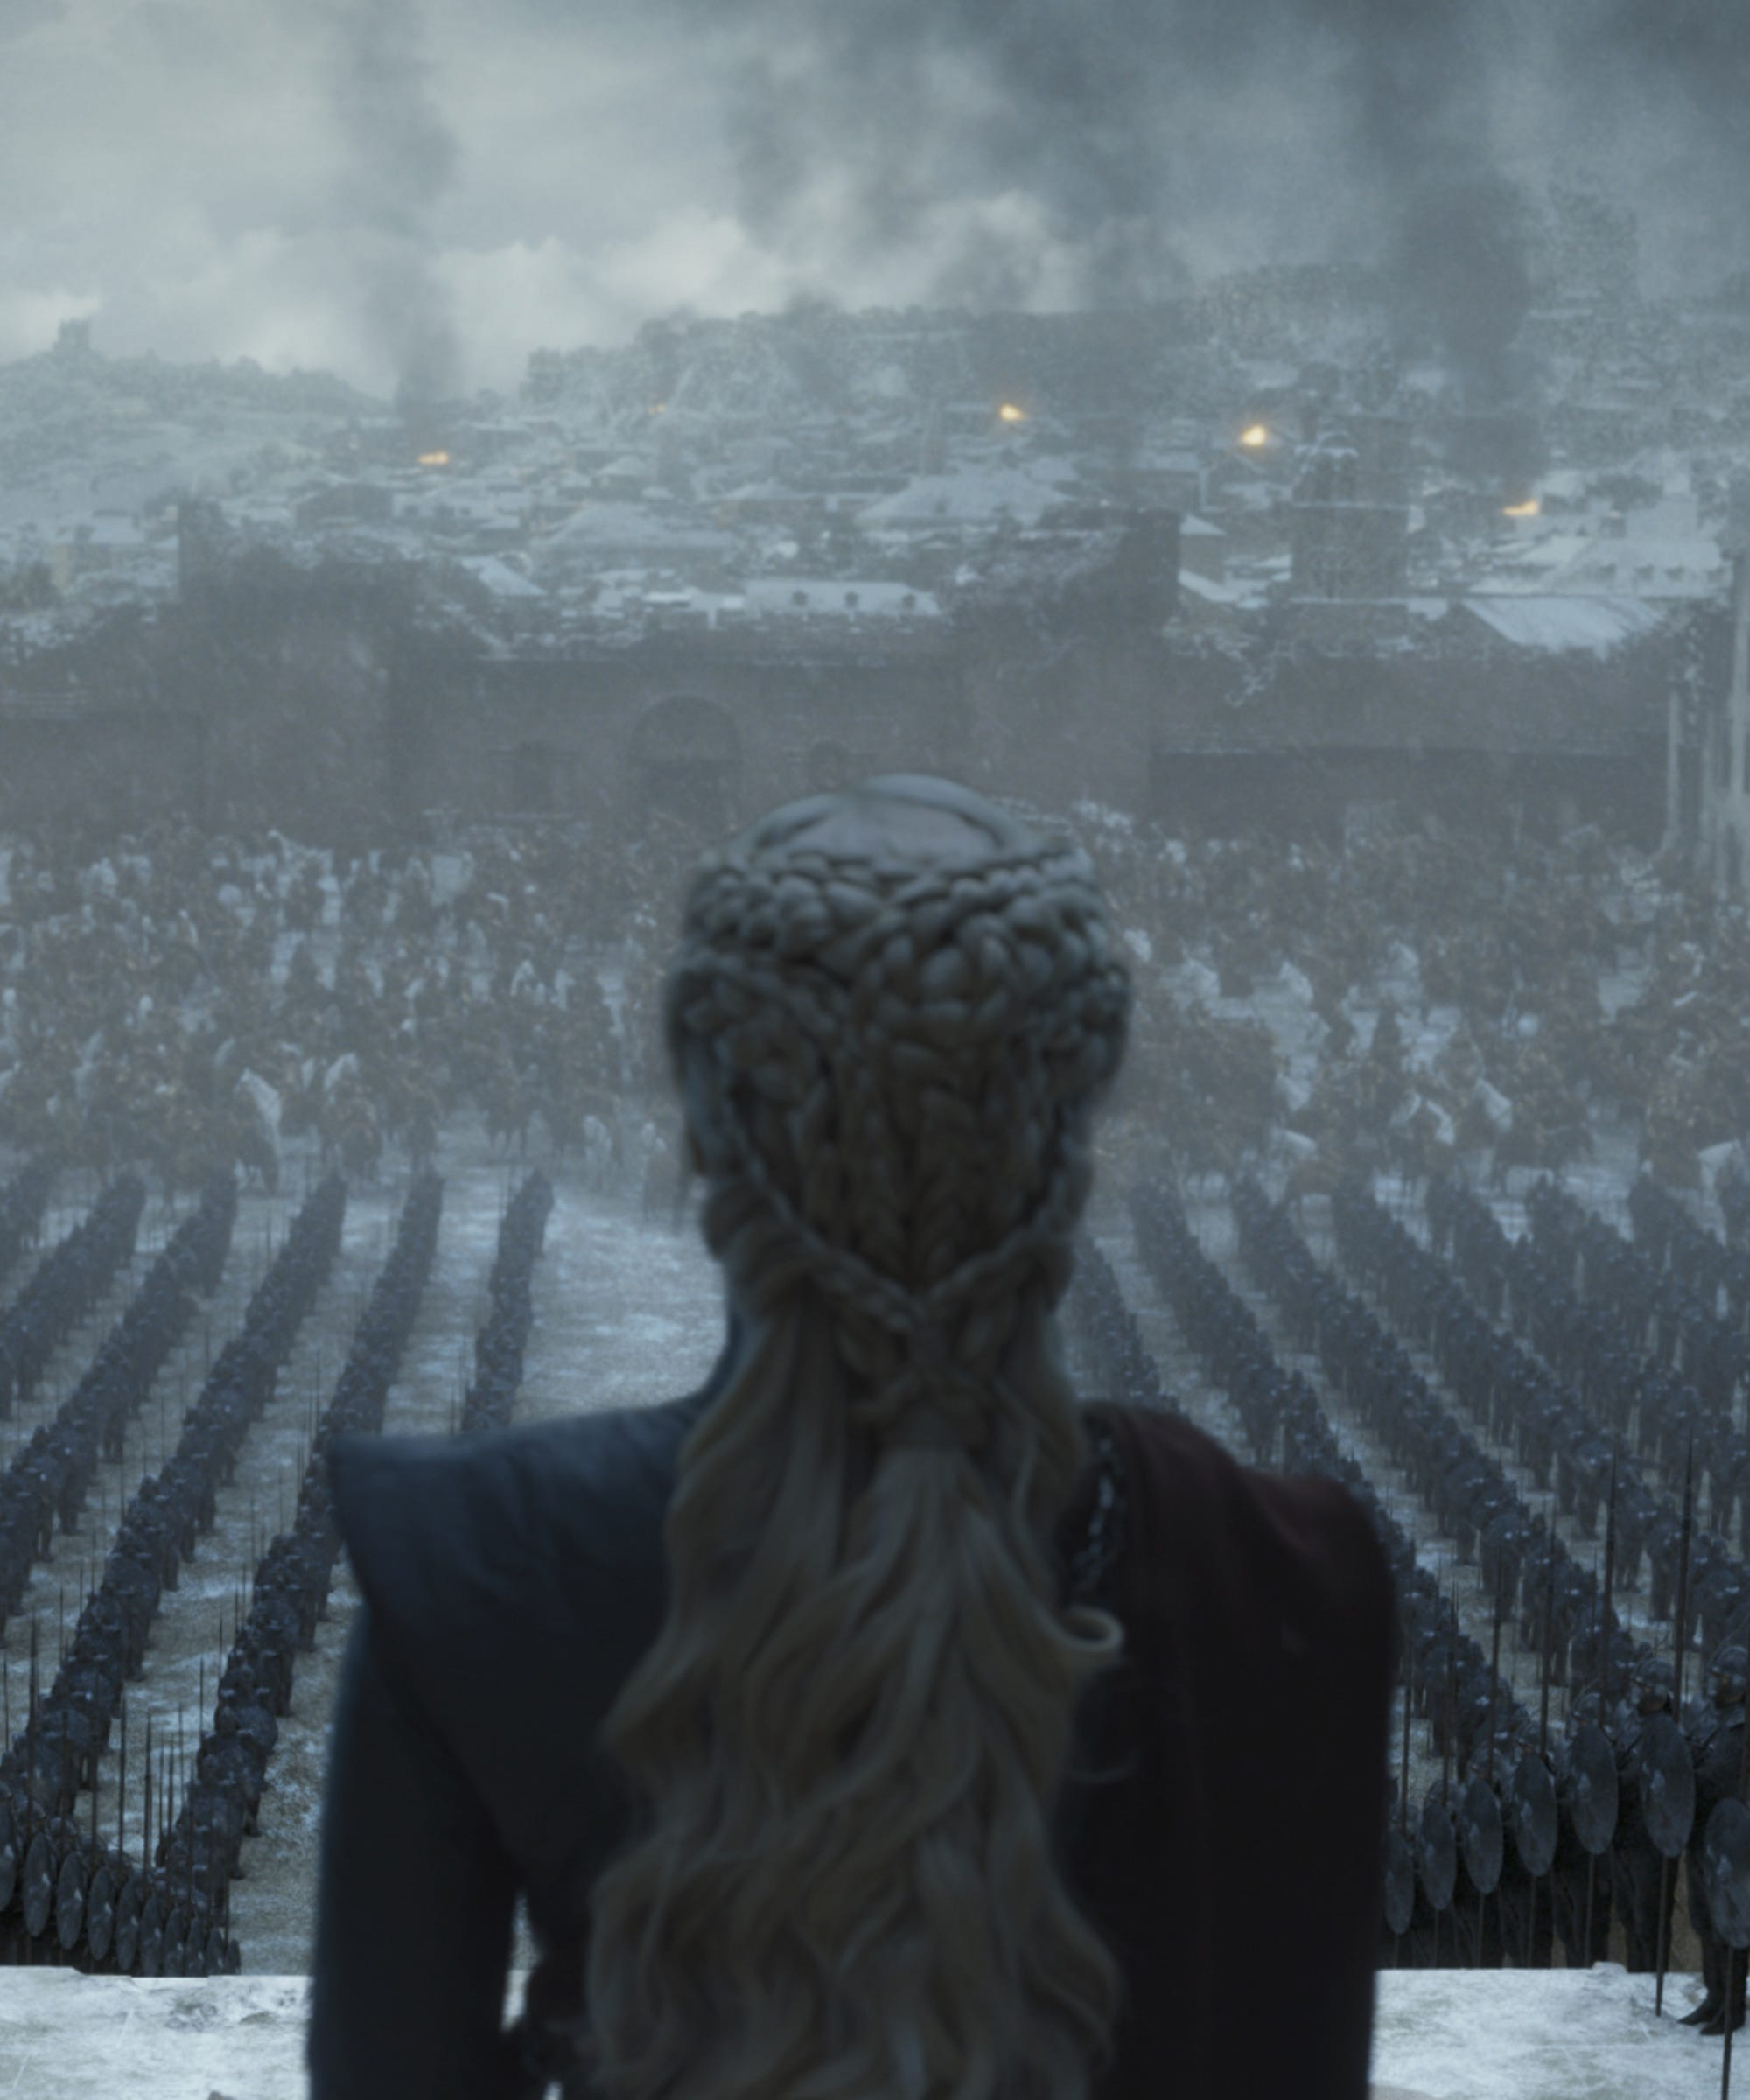 Game Of Thrones Finale Ending Spoilers Are On Reddit